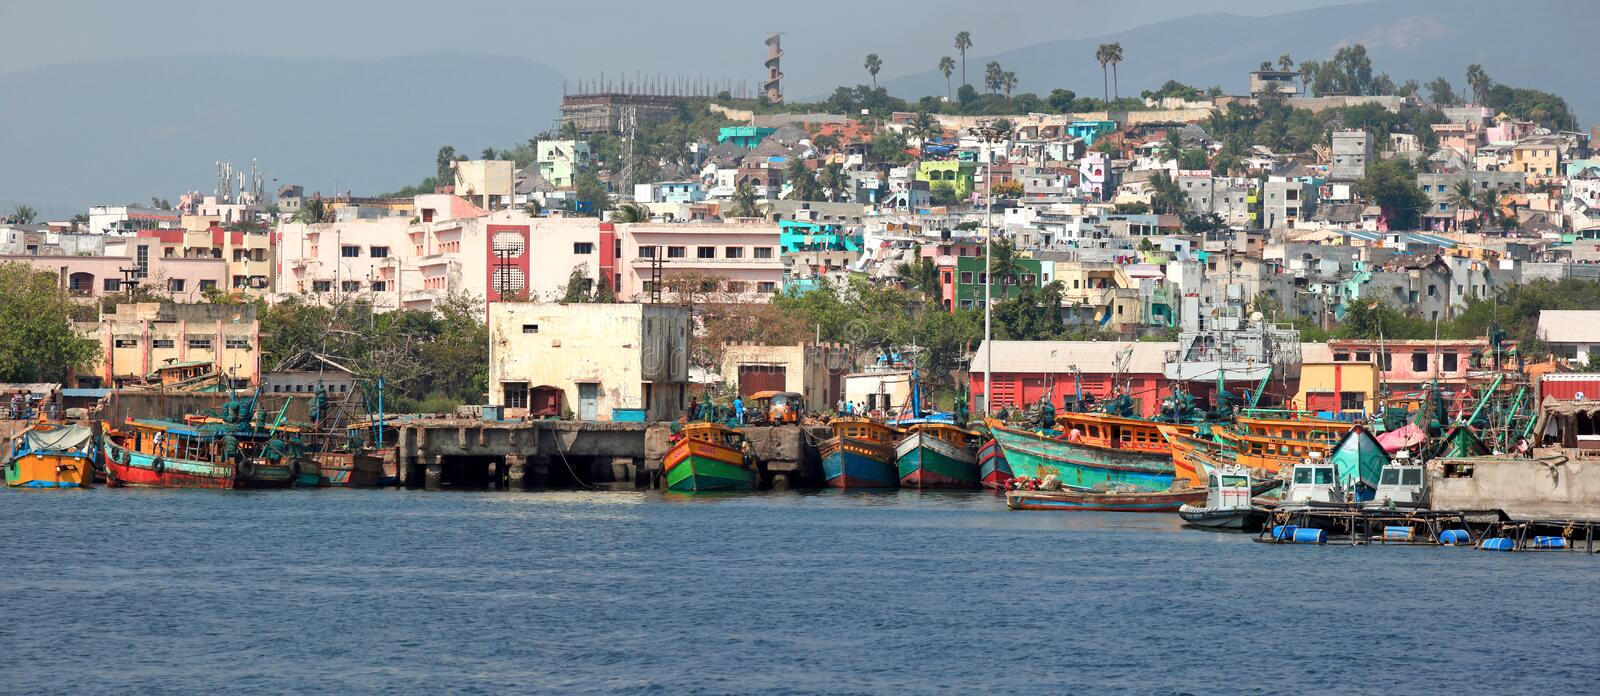 Visakhapatnam, INDIA. December 7 :Fishing harbor in Visakhapatnam was set up in 1976 spreading across 24 hectors of land . On December 7,2015 stock photo